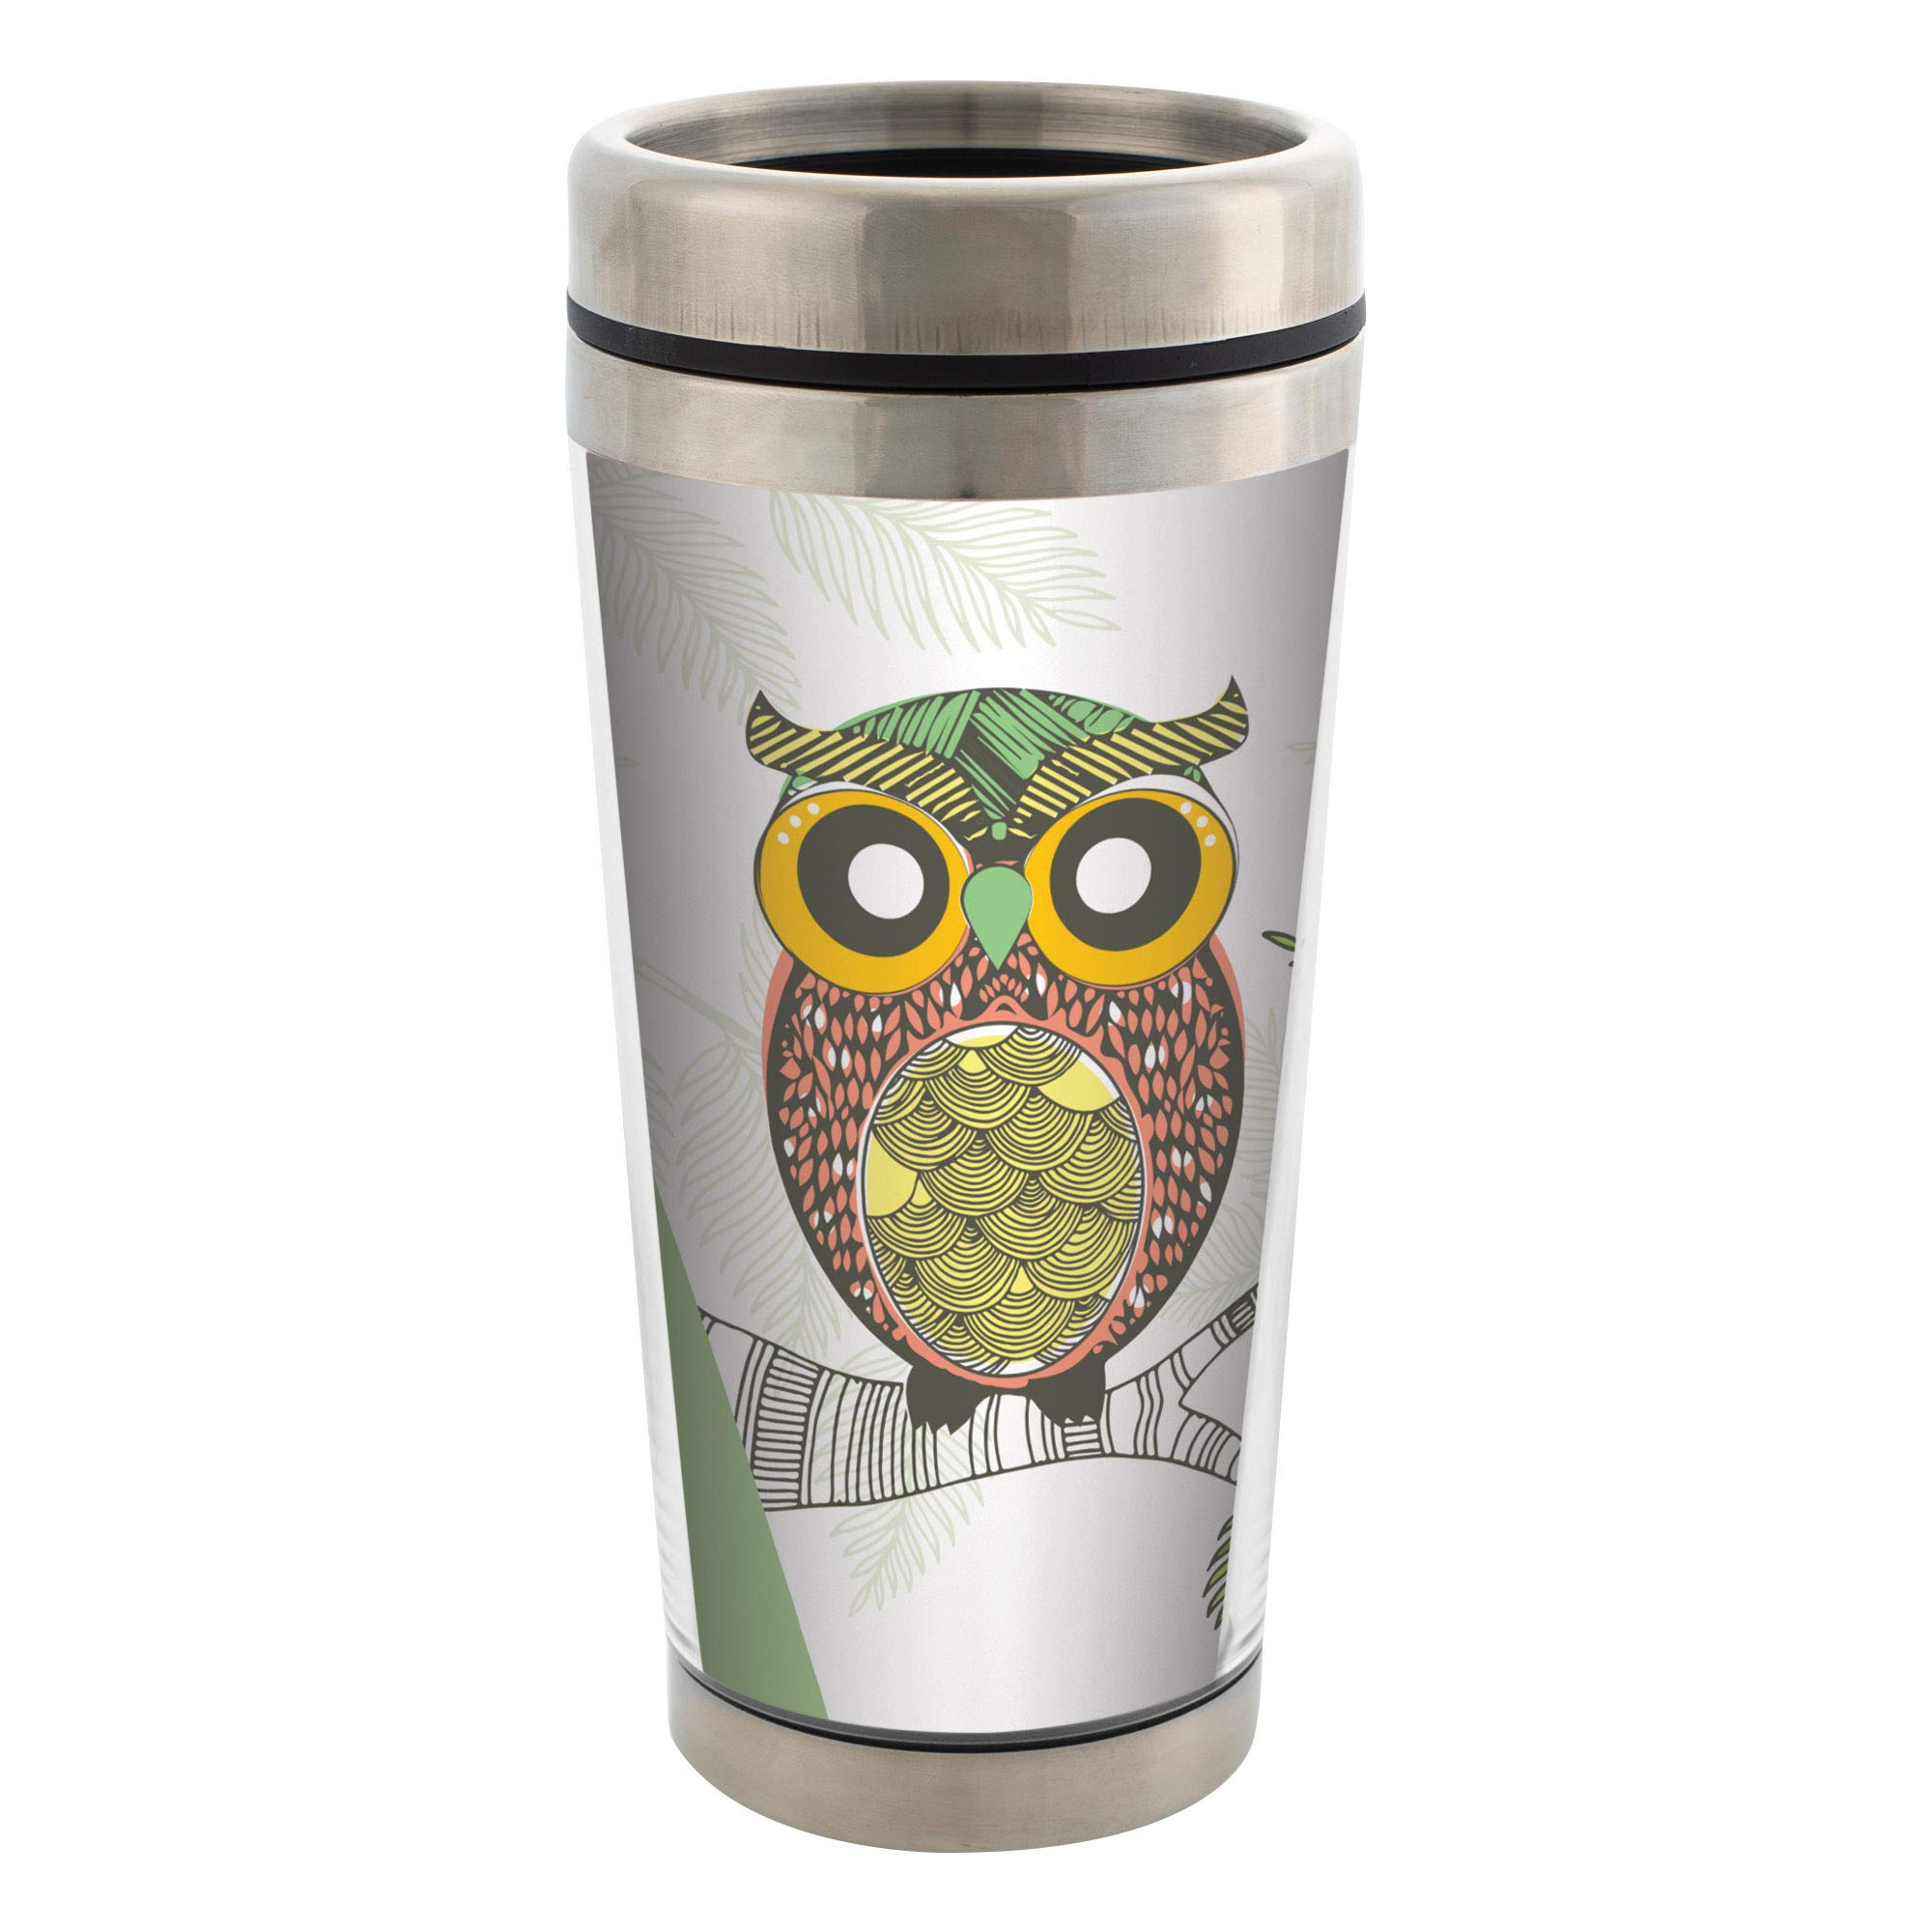 Owl Stainless Steel 16 oz Travel Mug with Lid